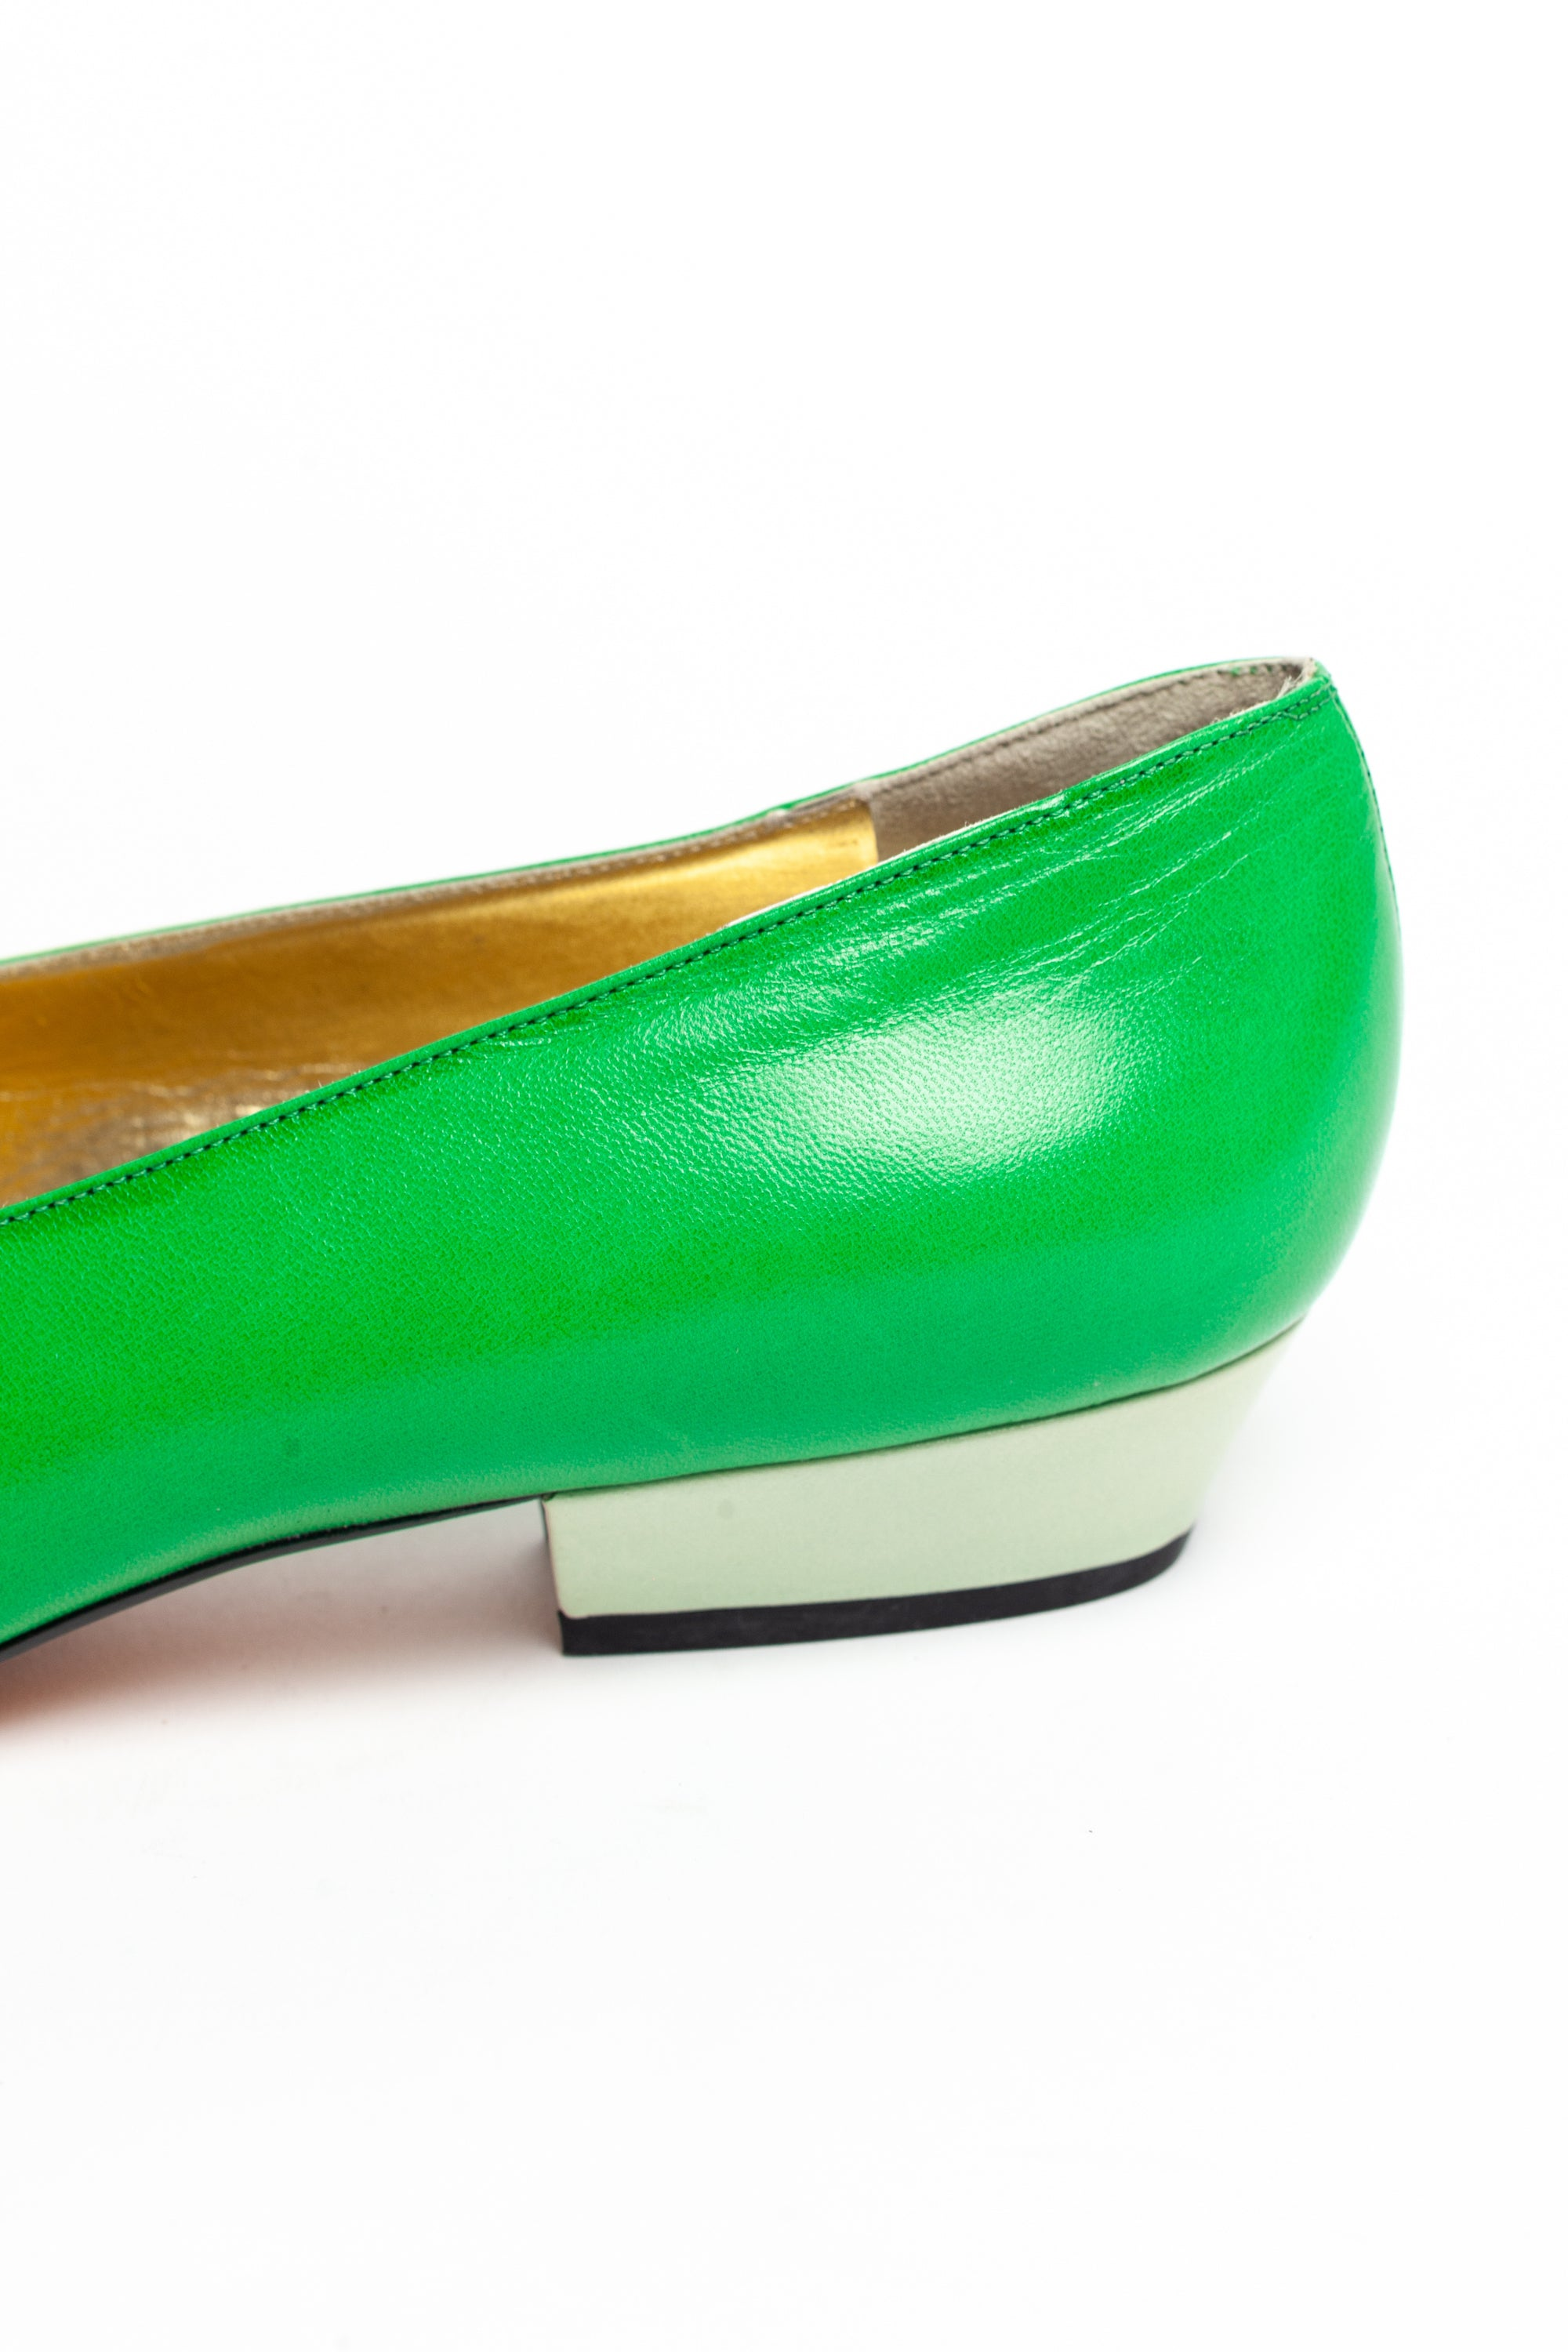 Yves Saint Laurent <br> 1980's low heel pumps